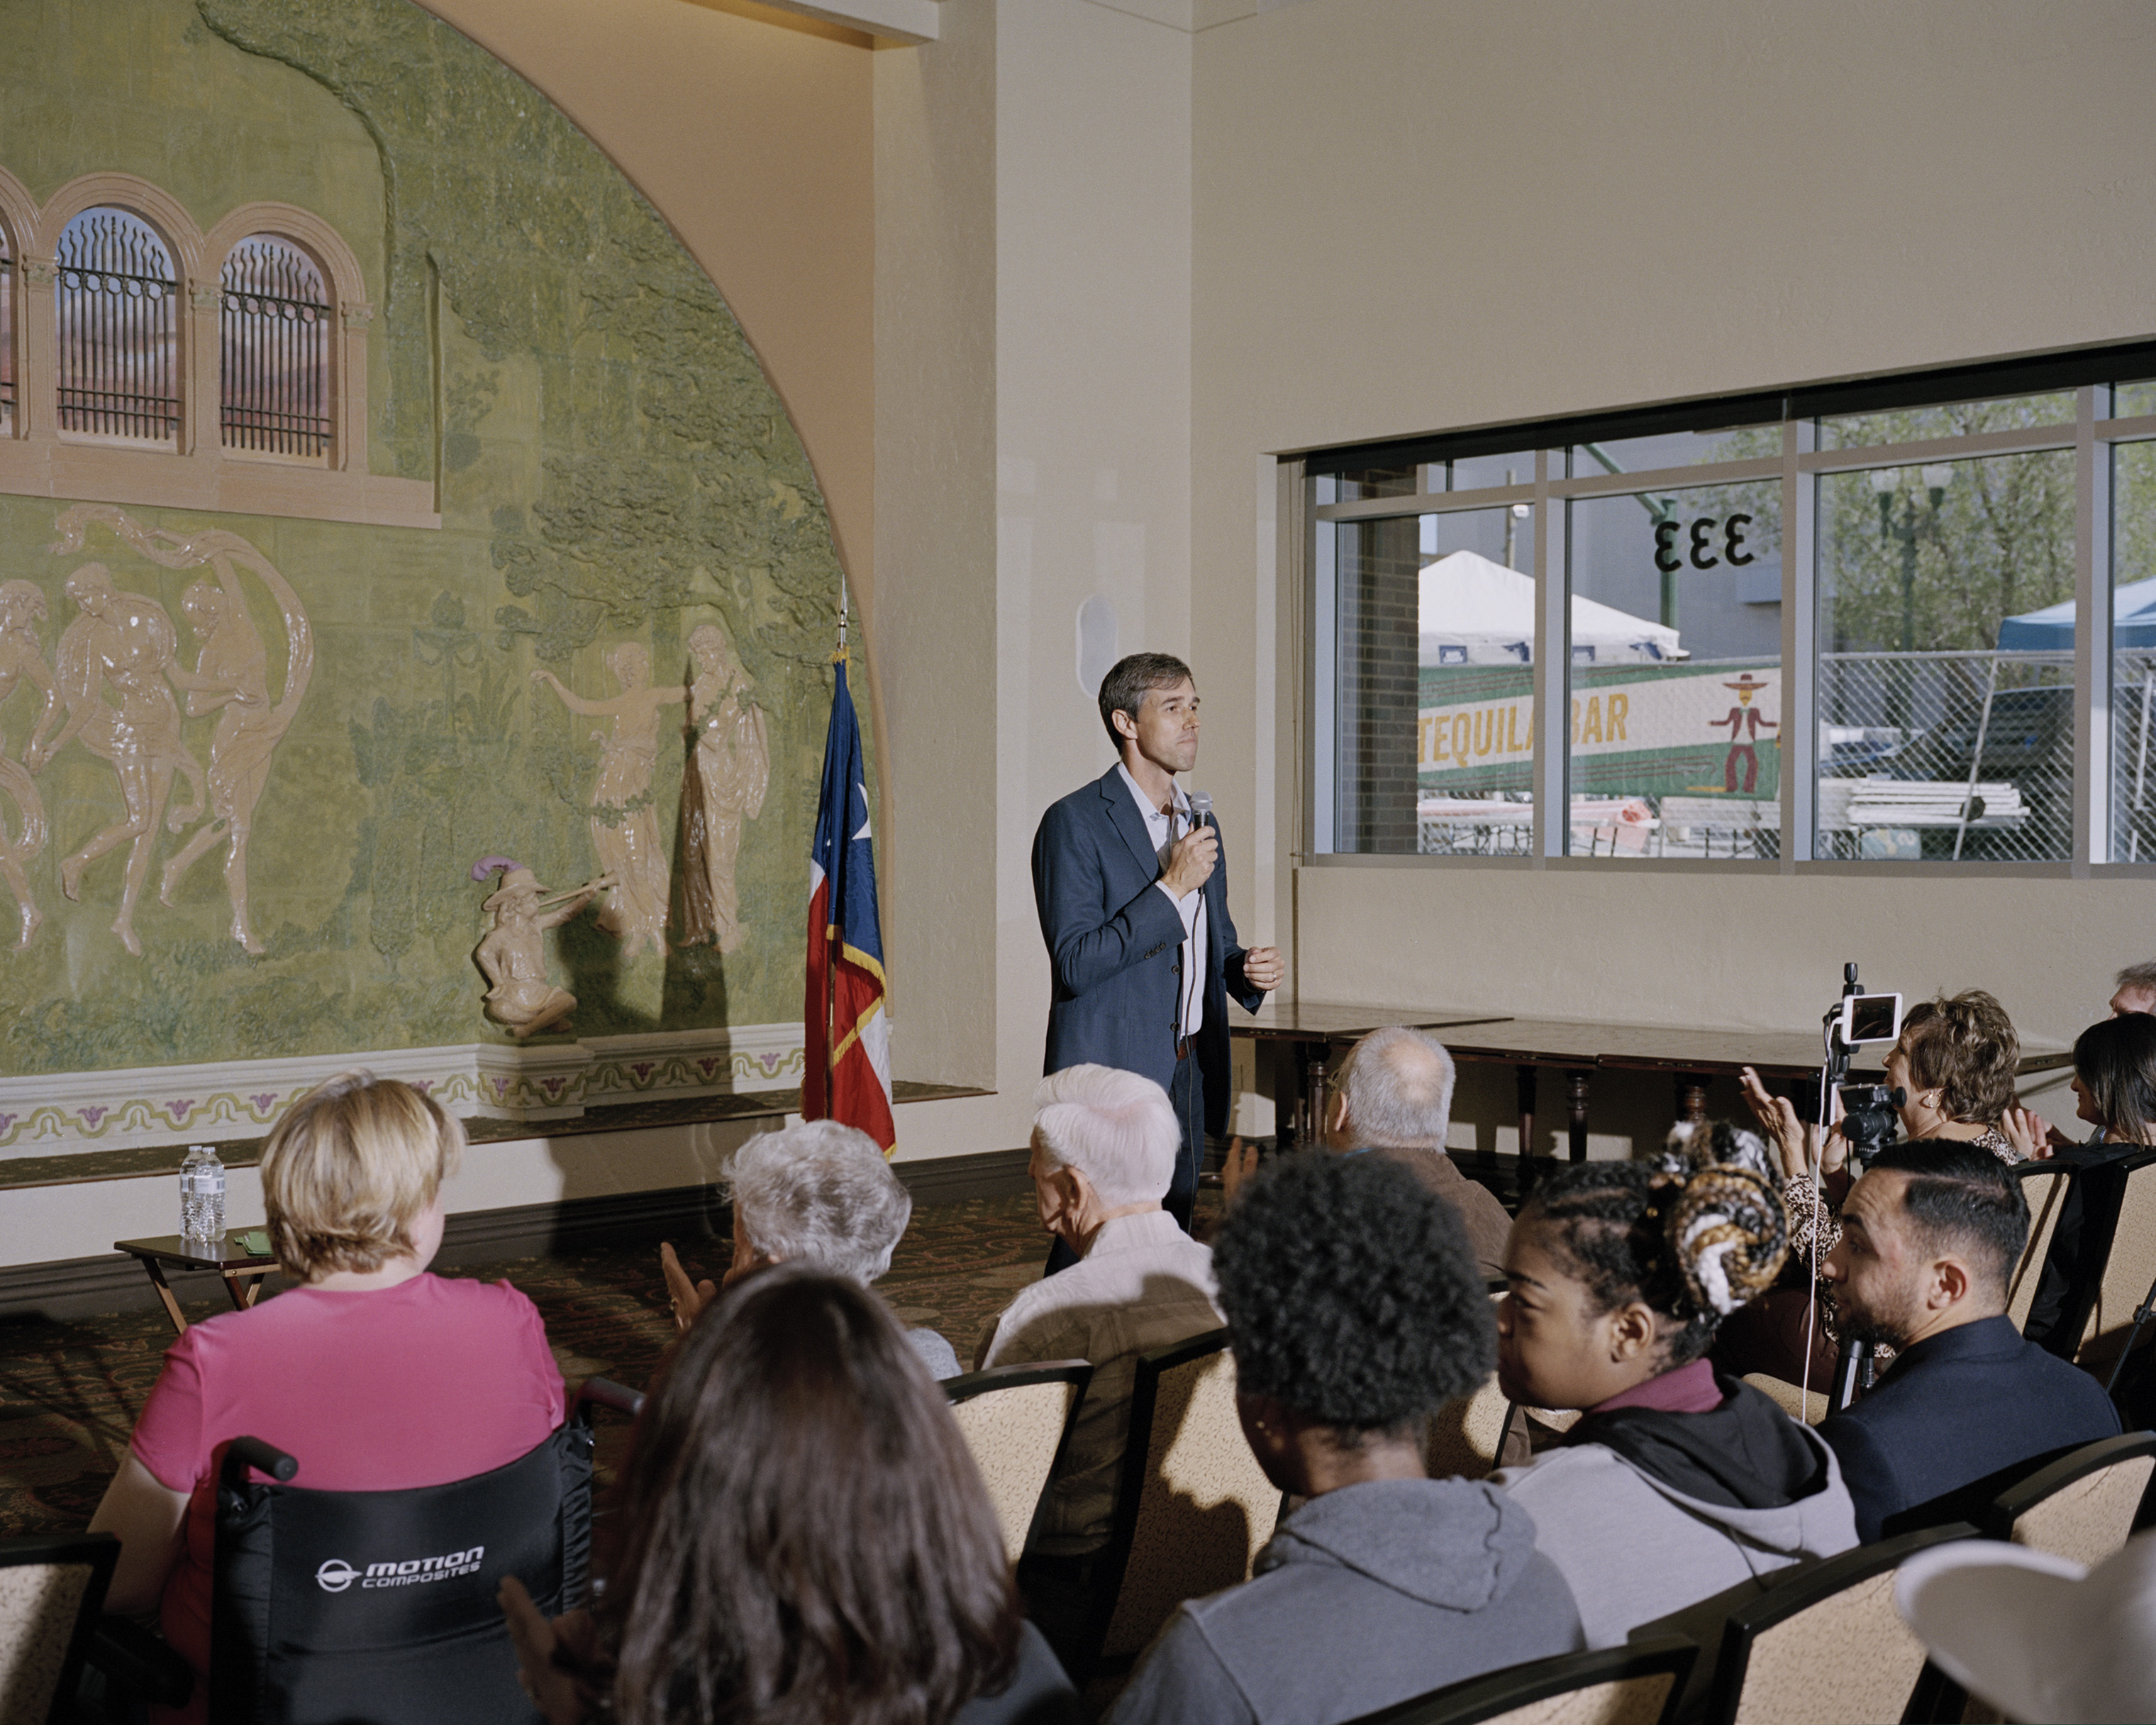 O'Rourke answers questions at a town hall meeting.